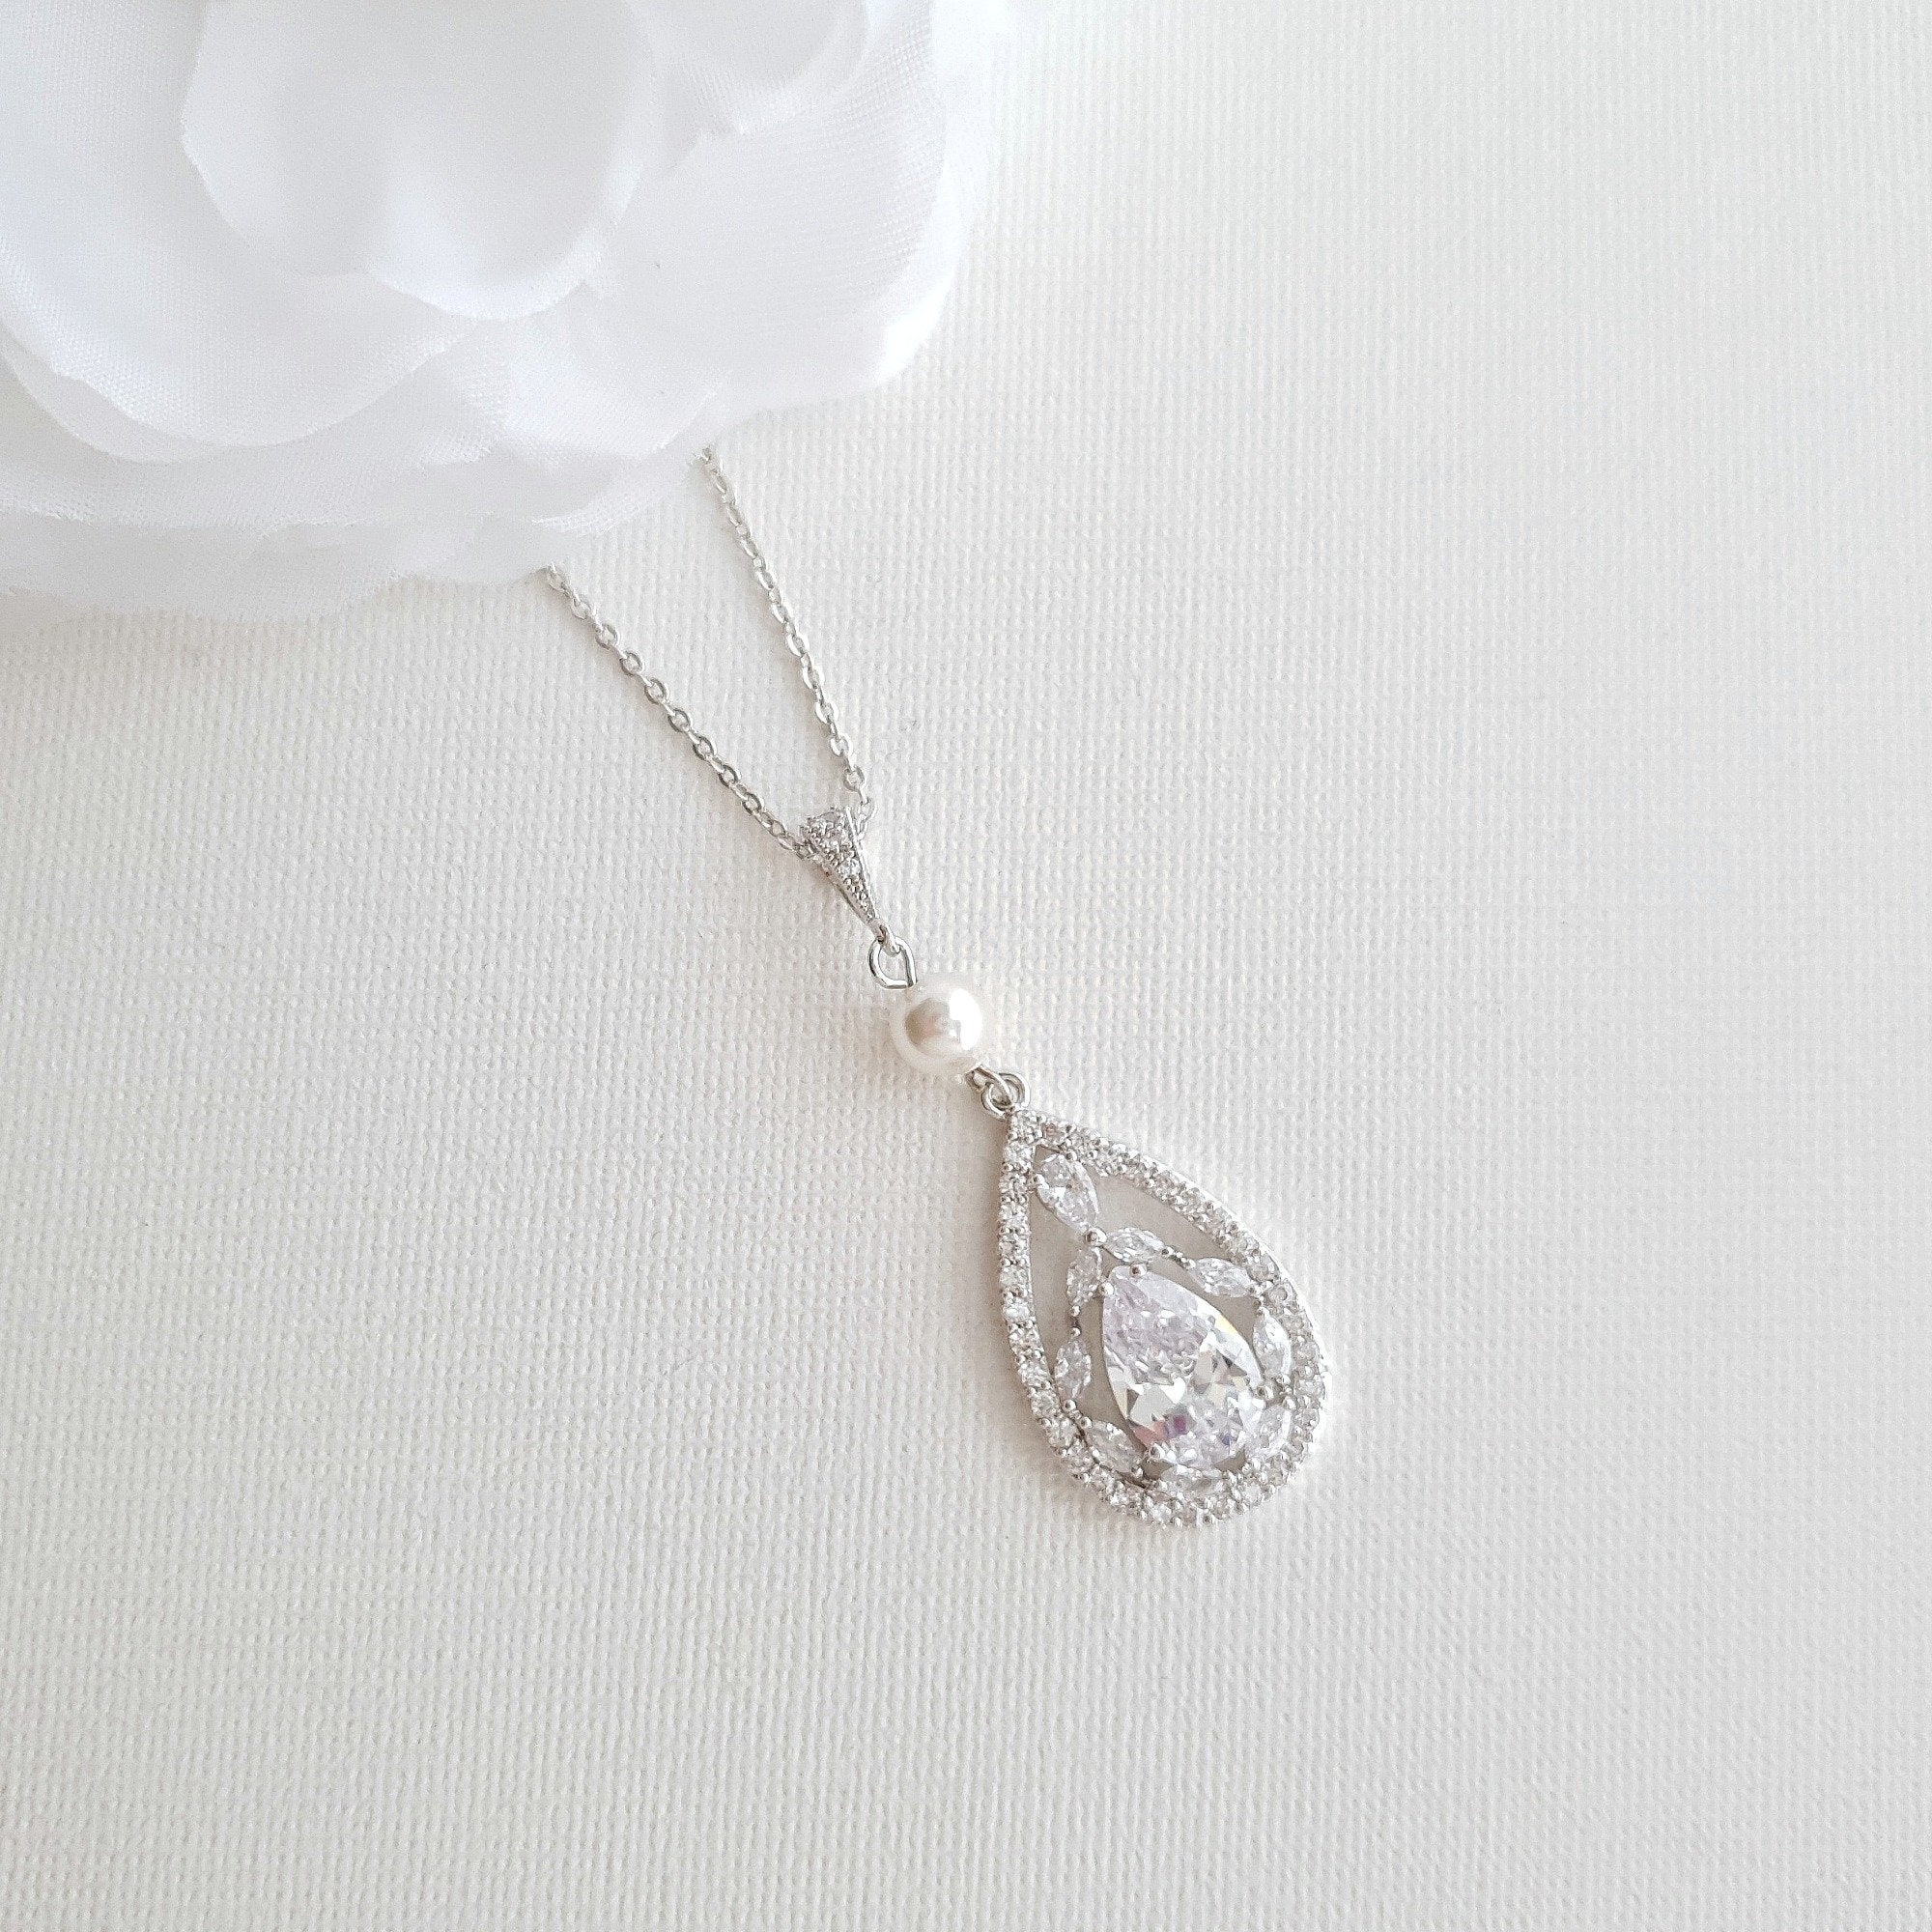 Bridal Pendant Necklace with Teardrop CZ Crystals-Esther